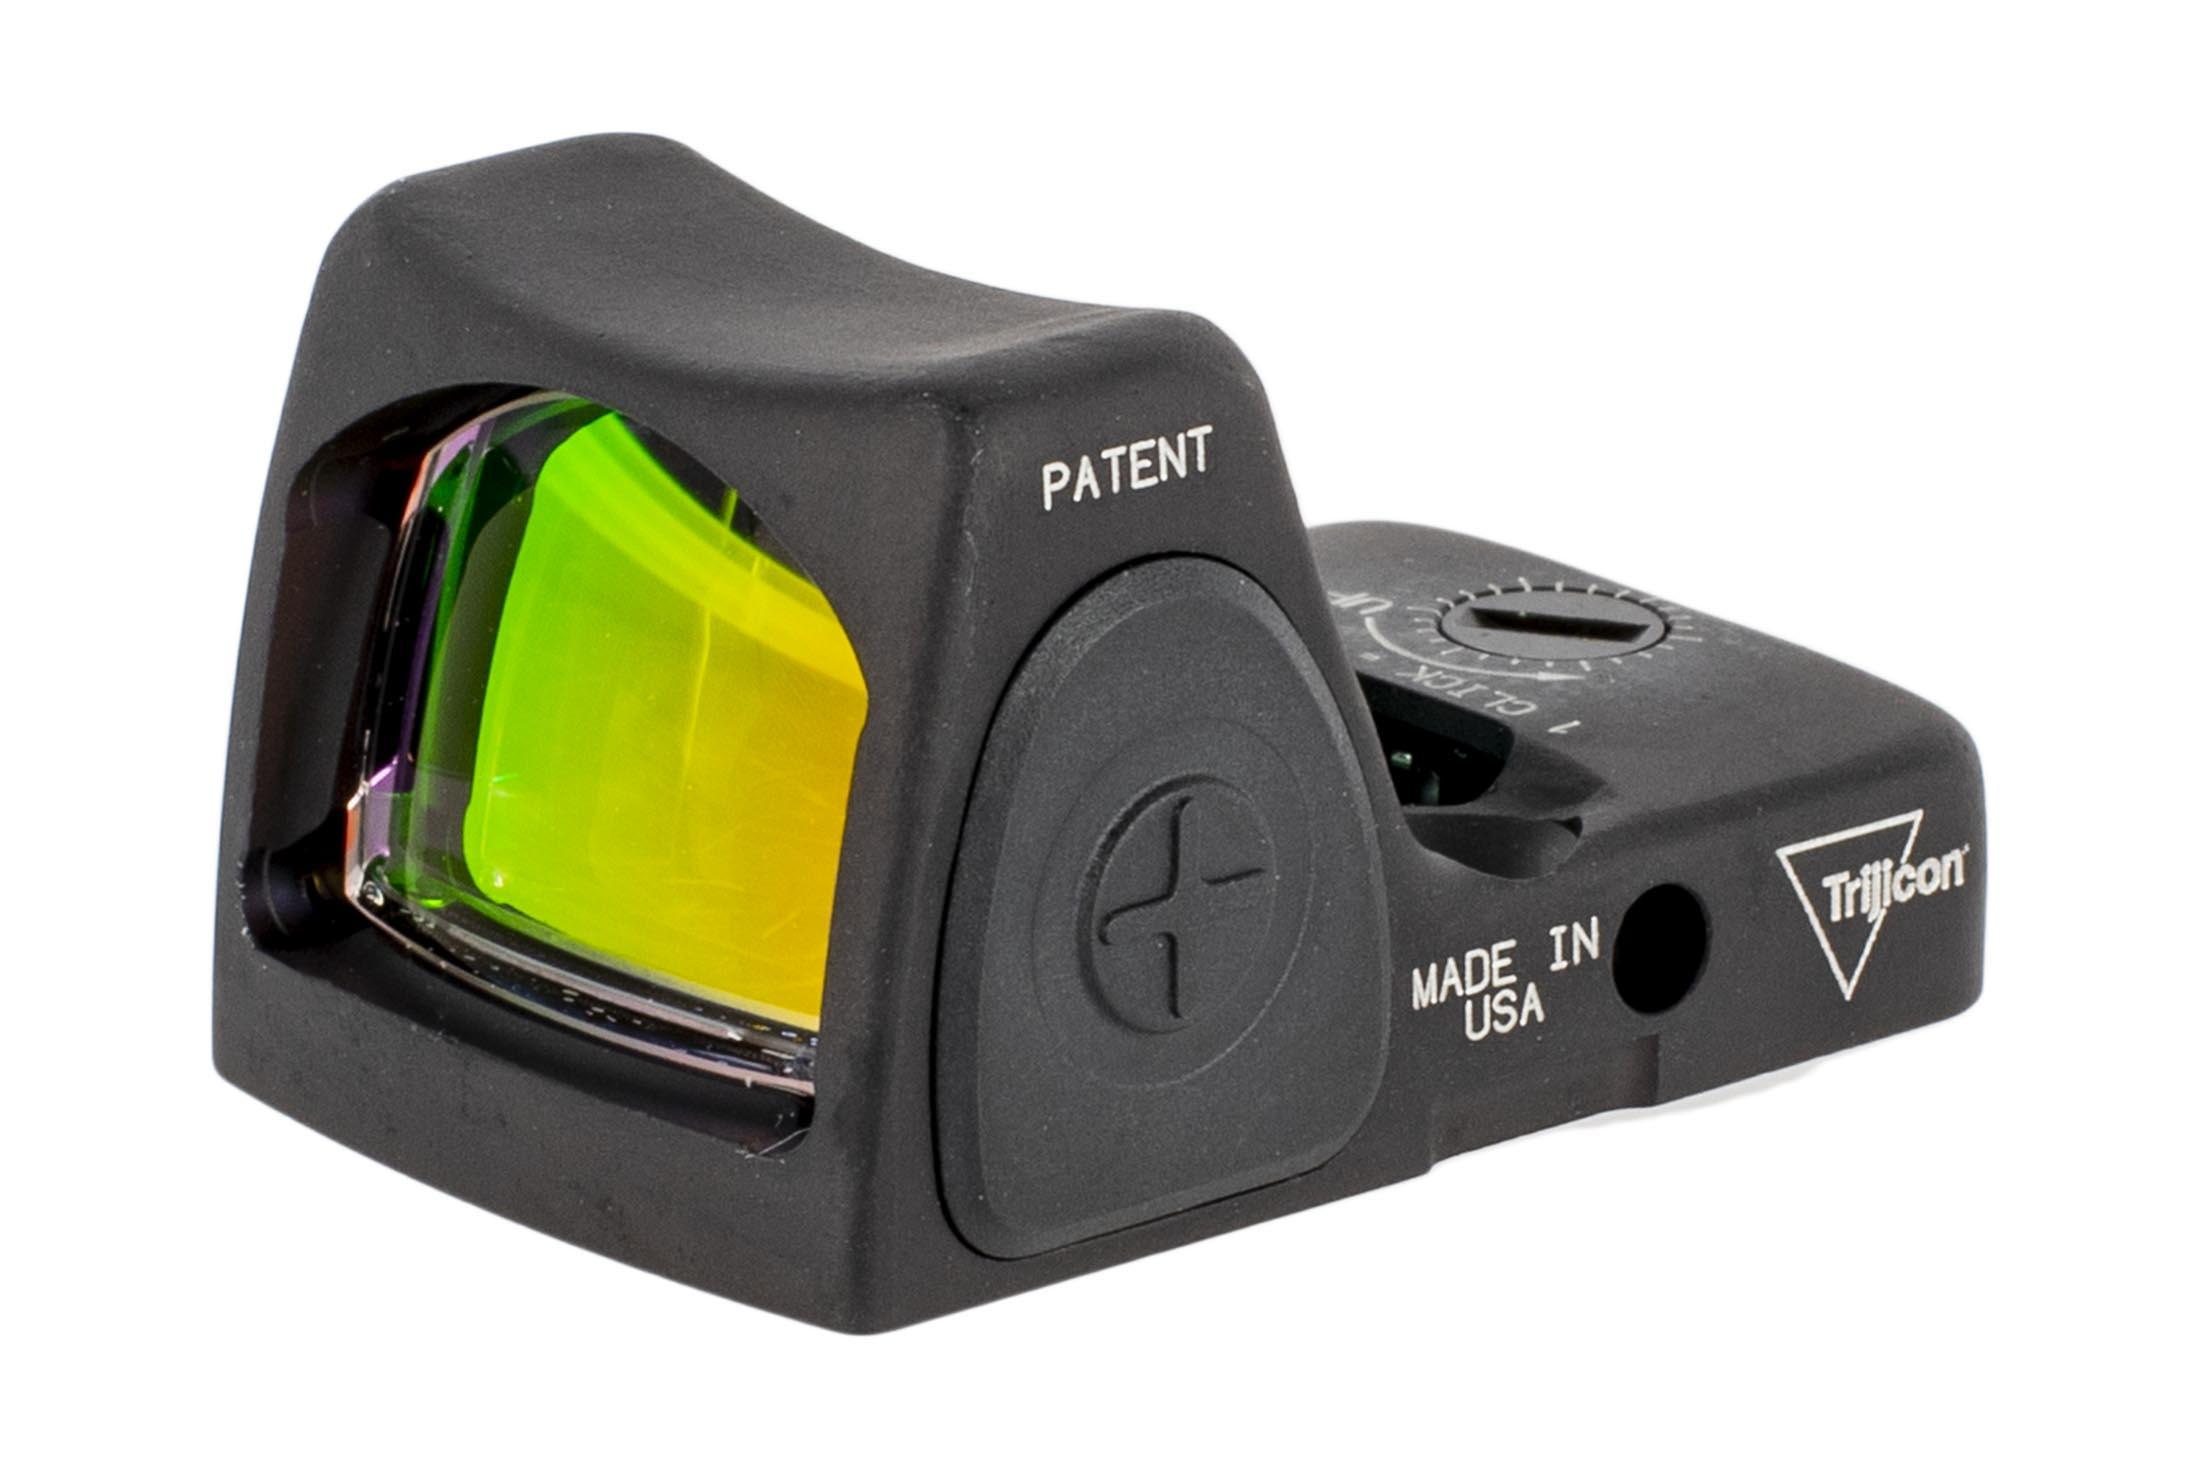 The Trjicon RMR Type II 1 MOA Reflex sight features large rubber side buttons for adjusting LED brightness